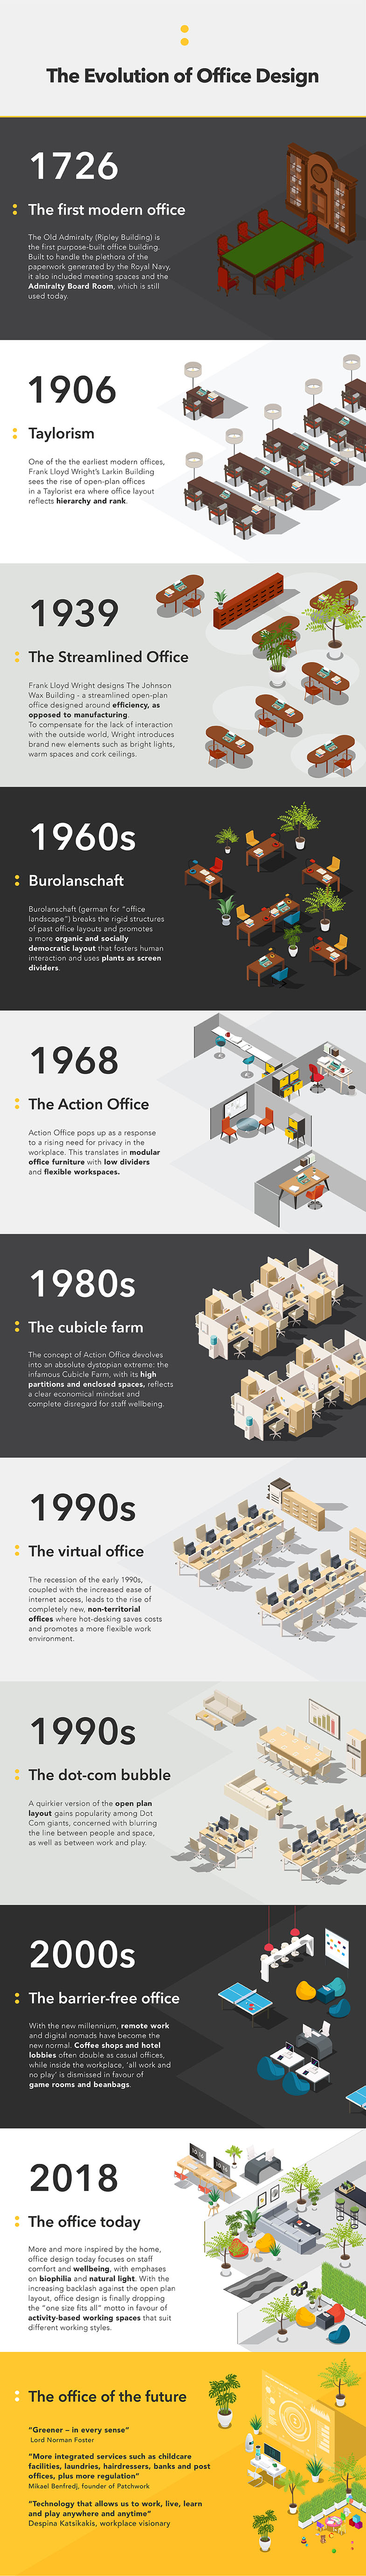 Infographic of the evolution of office design